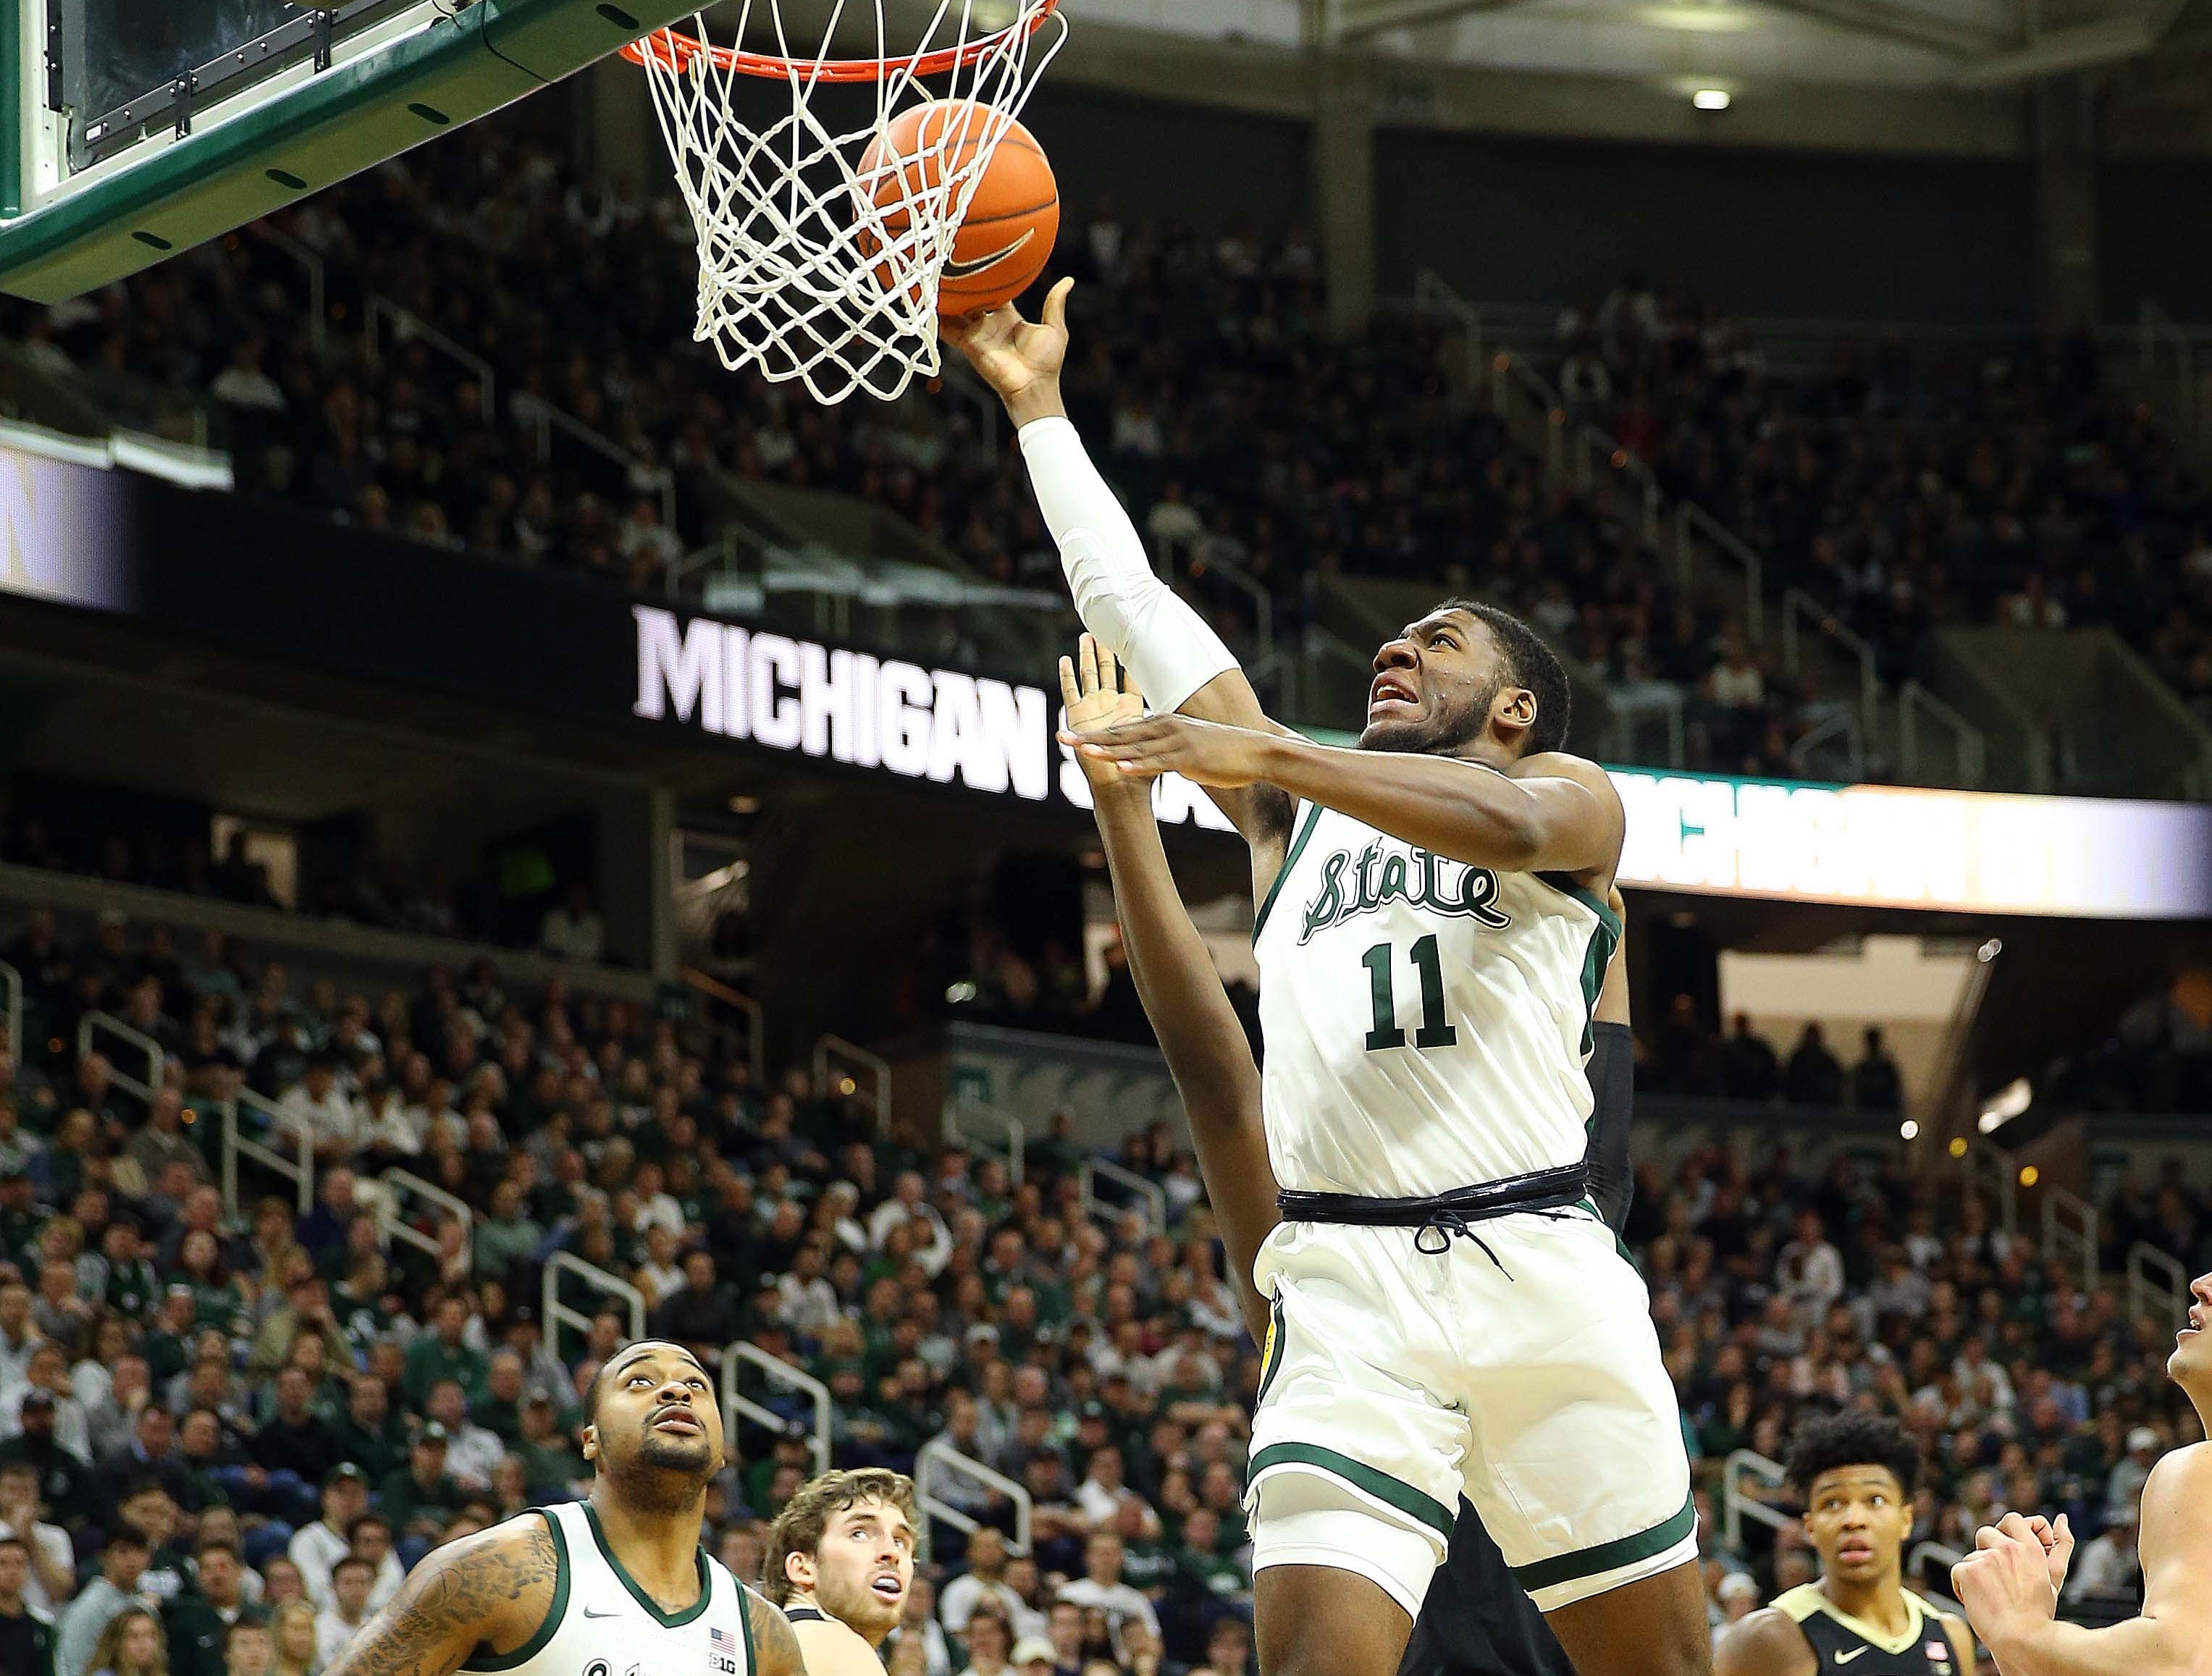 Jan 8, 2019; East Lansing, MI, USA; Michigan State Spartans forward Aaron Henry (11) lays the ball up during the second half of a game against the Purdue Boilermakers at the Breslin Center. Mandatory Credit: Mike Carter-USA TODAY Sports